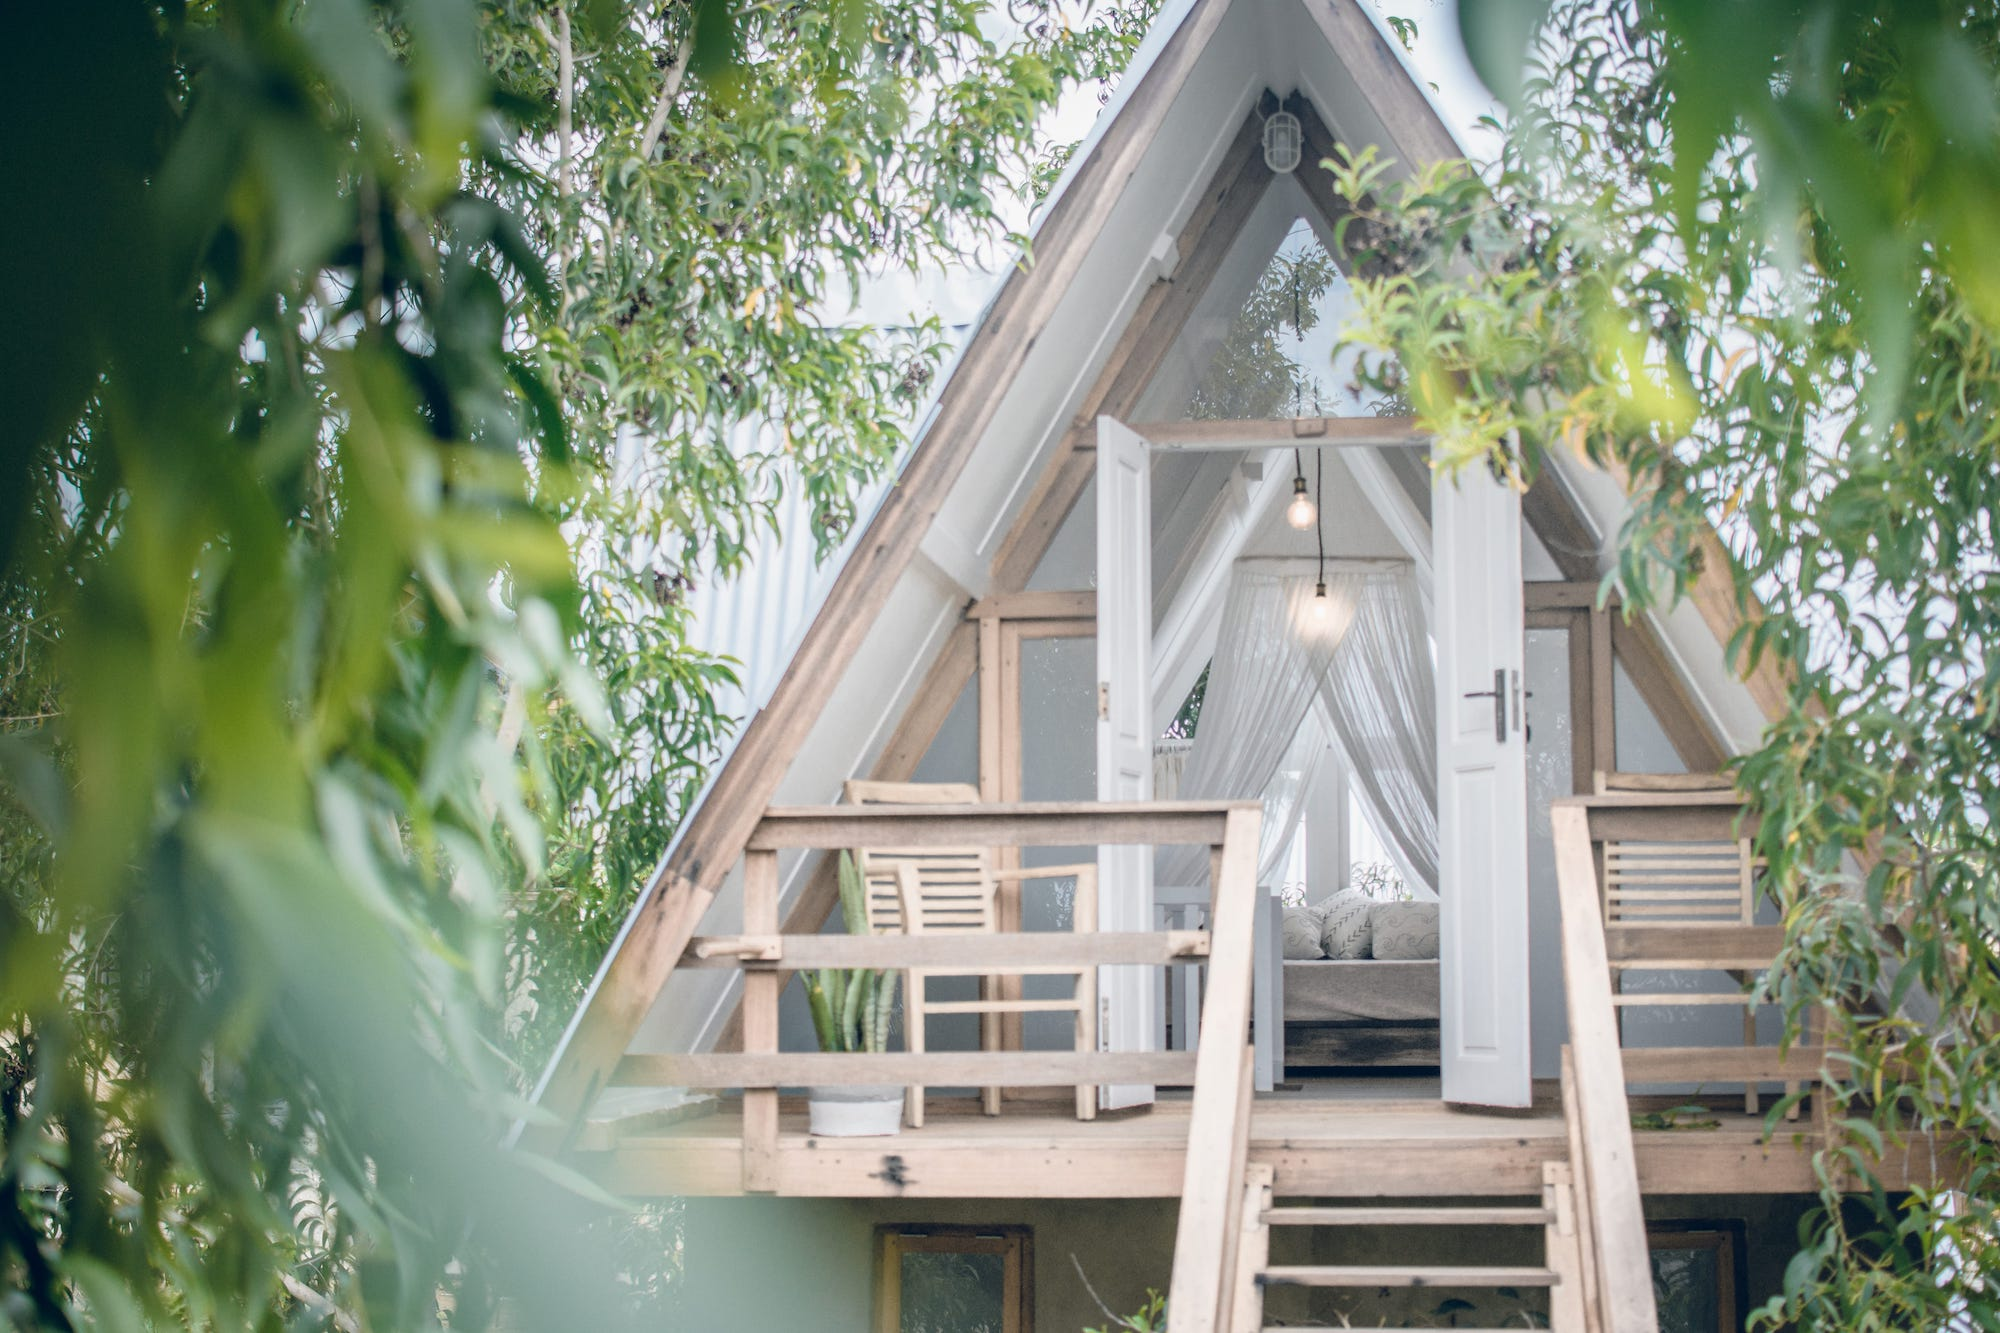 treehouse outside door open 2.jpg